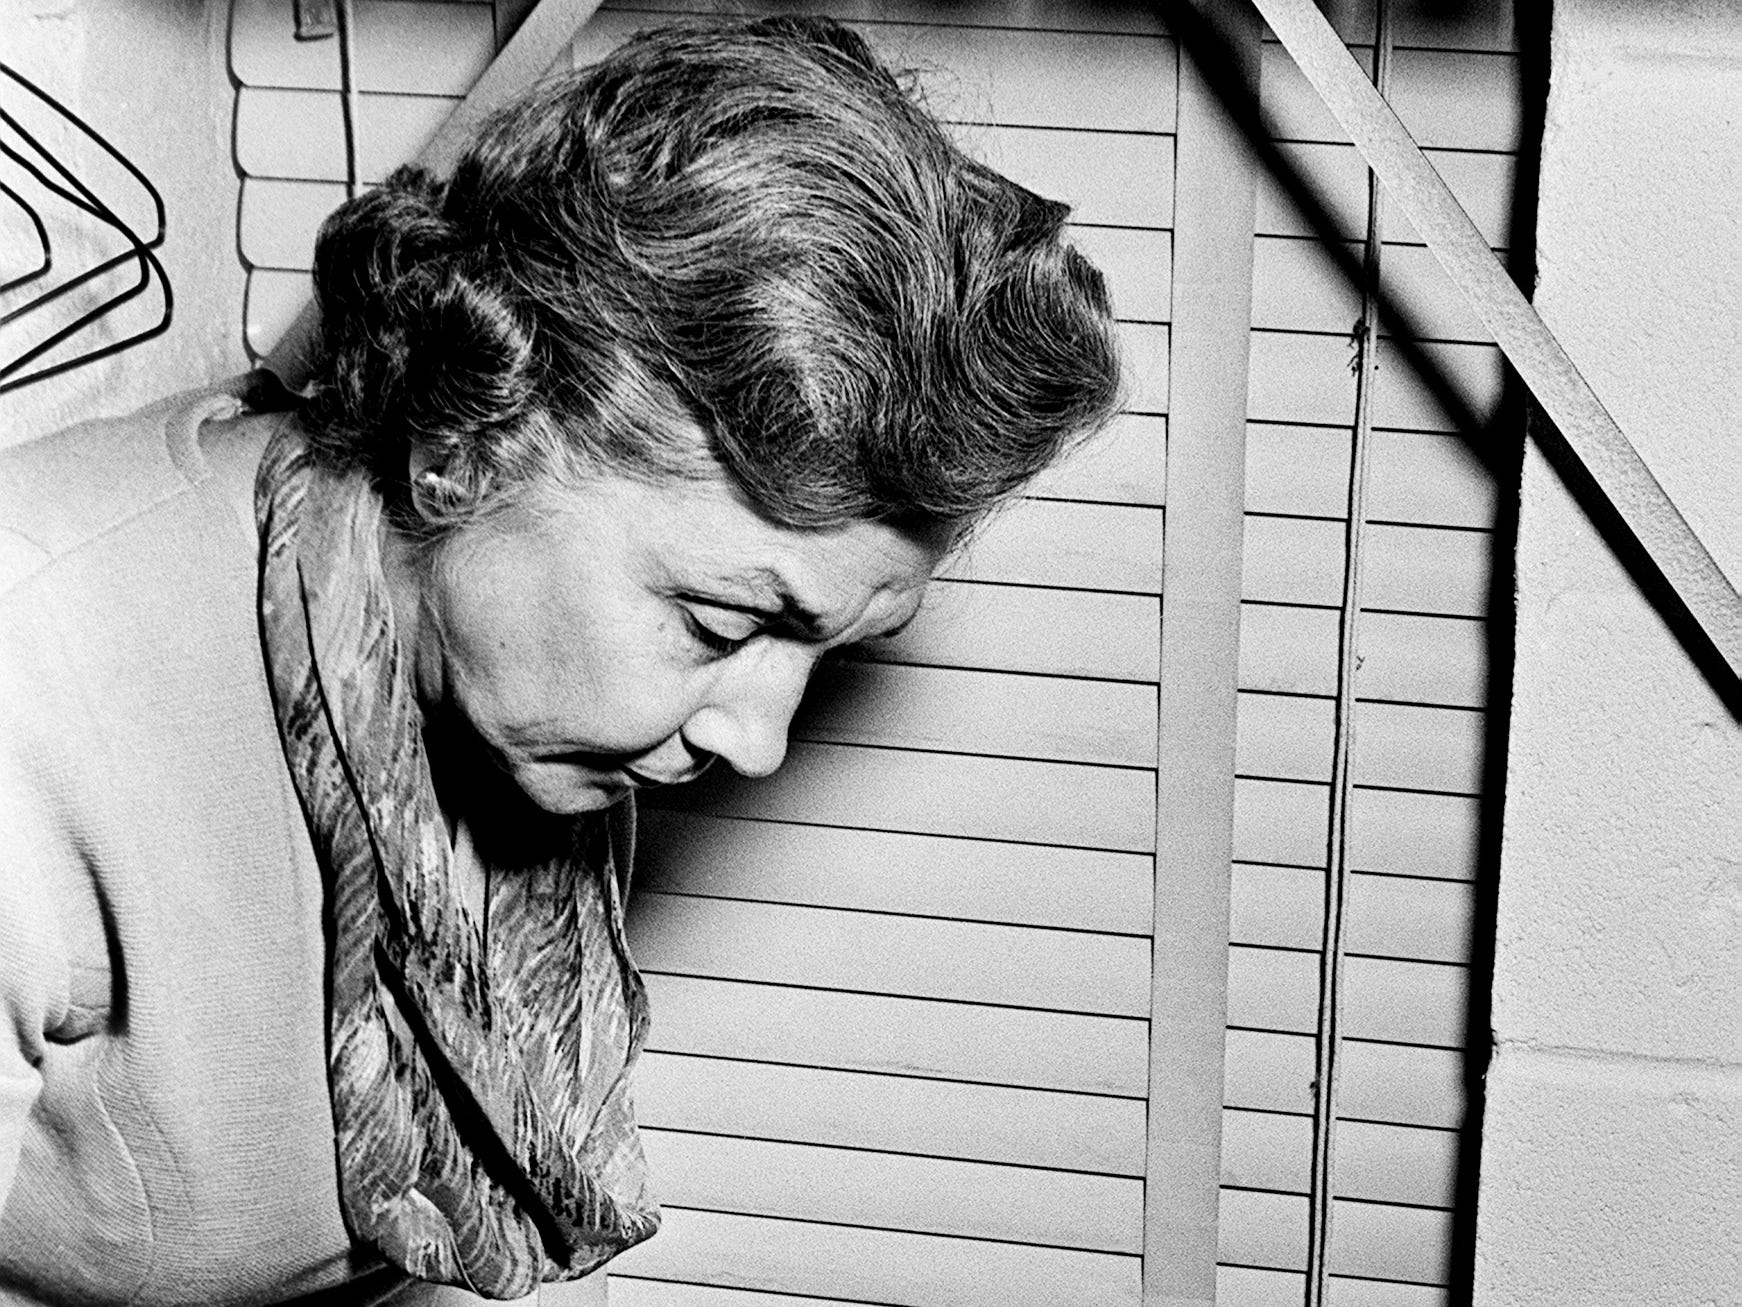 Elise Oliver, director of the State Department of Public Welfare office at 1616 Church St., examines a brick apparently used to break the office window Dec. 2, 1968. They found an empty room once filled with Christmas gifts for children in foster homes.